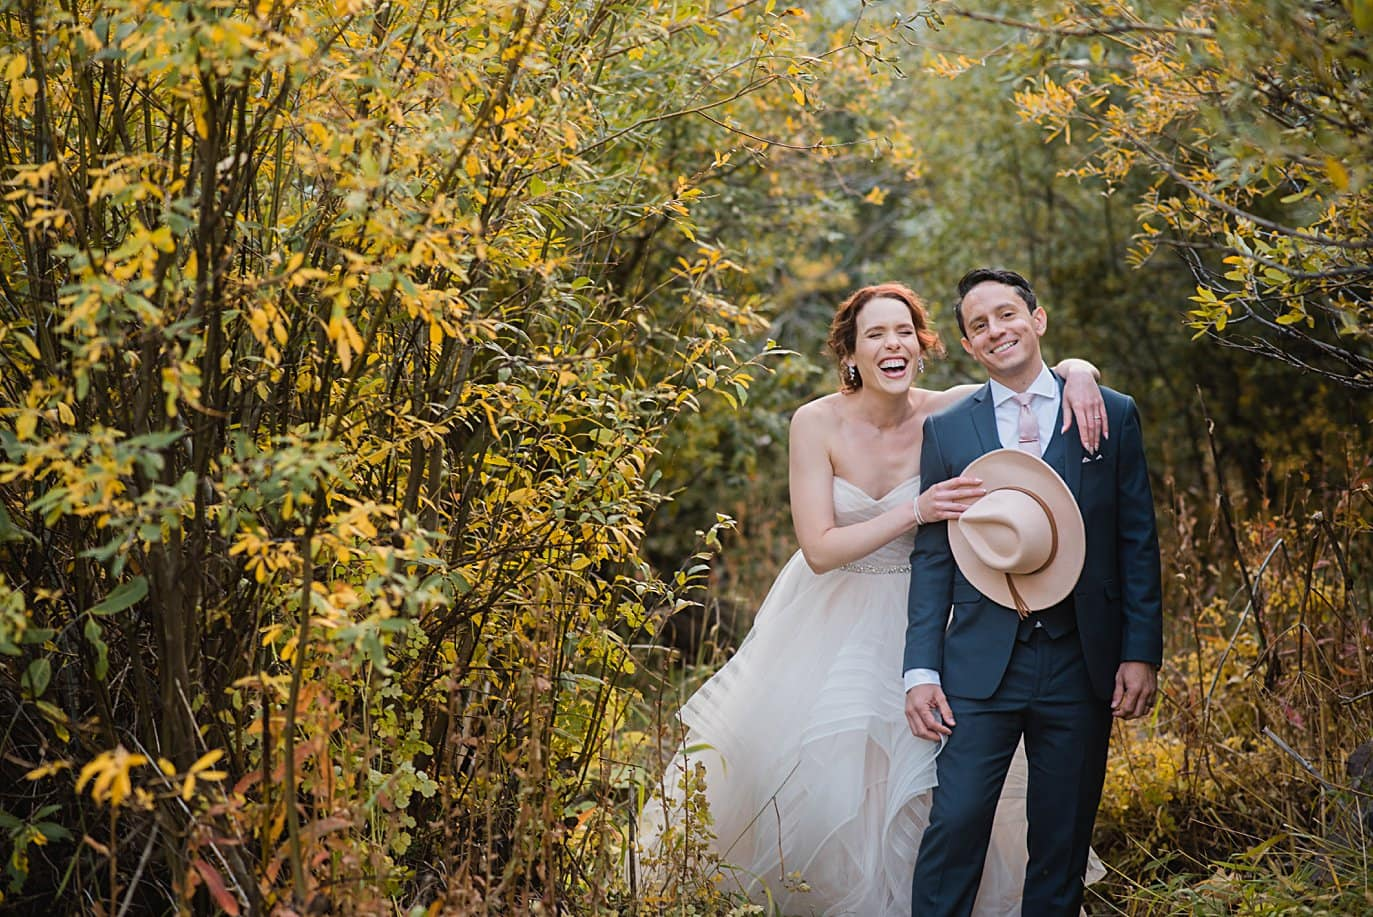 bride with pink hat in fall foliage in Aspen by Denver wedding photographer Jennie Crate